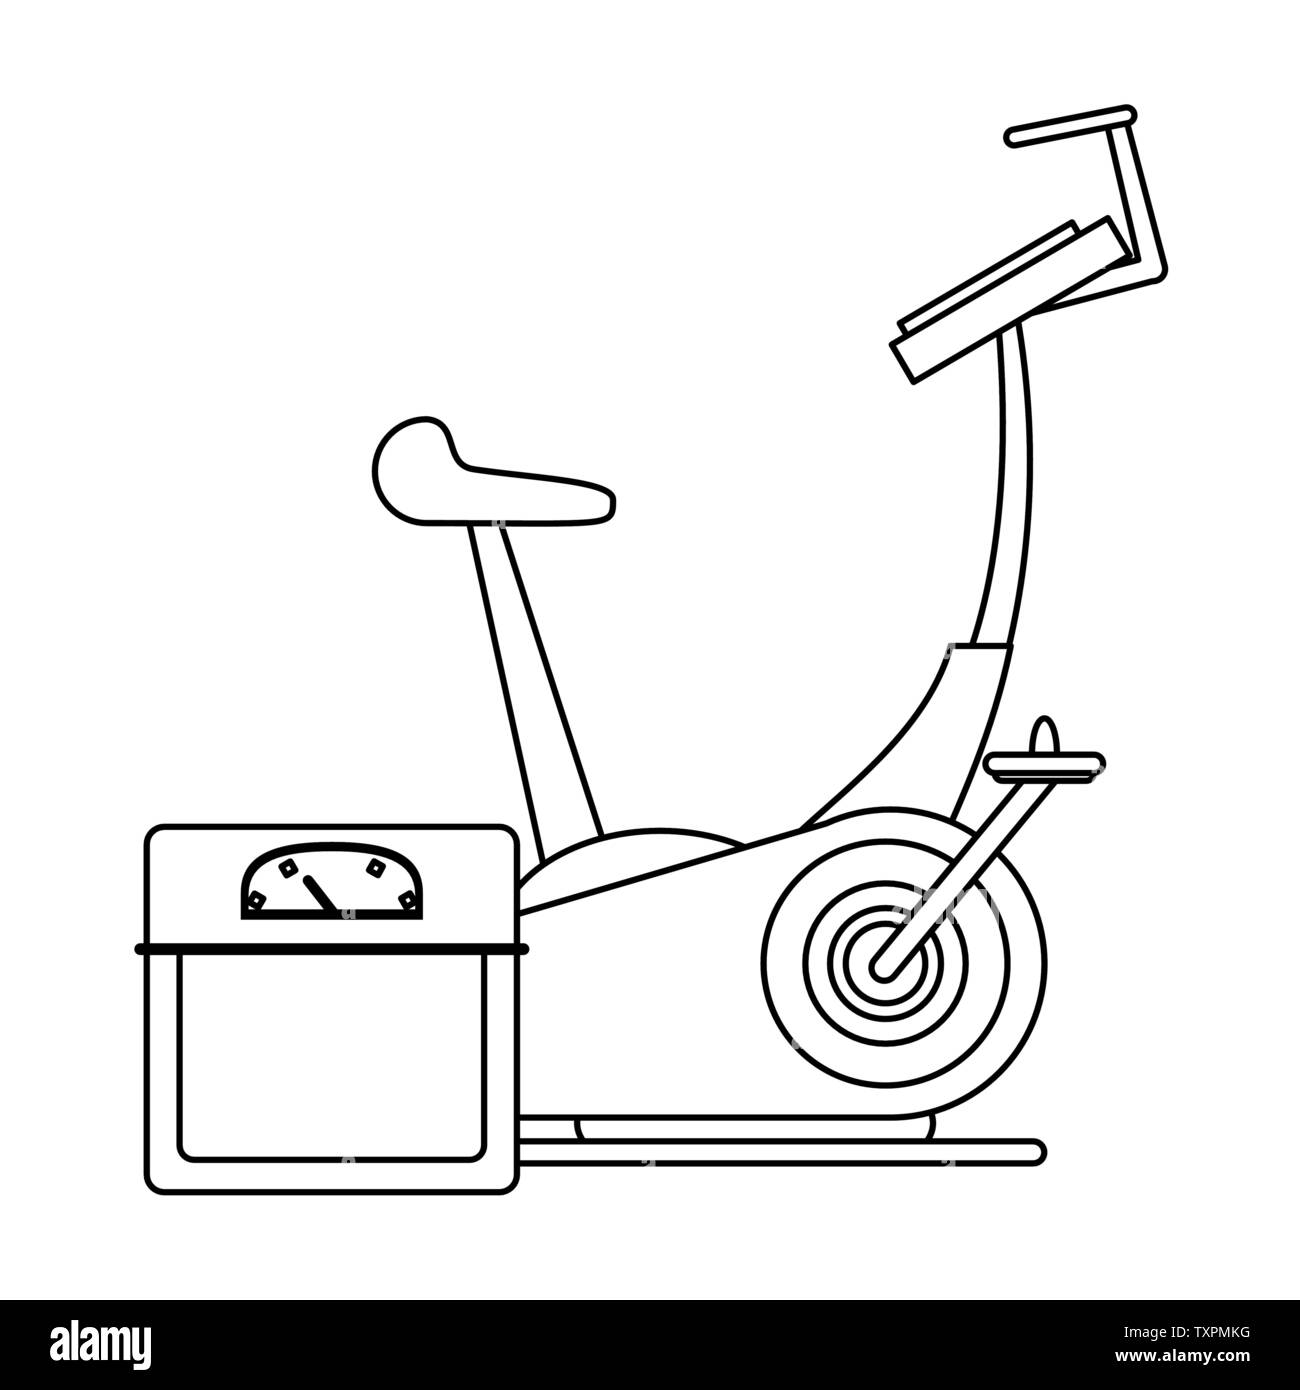 fitness equipment workout health symbols in black and white - Stock Image